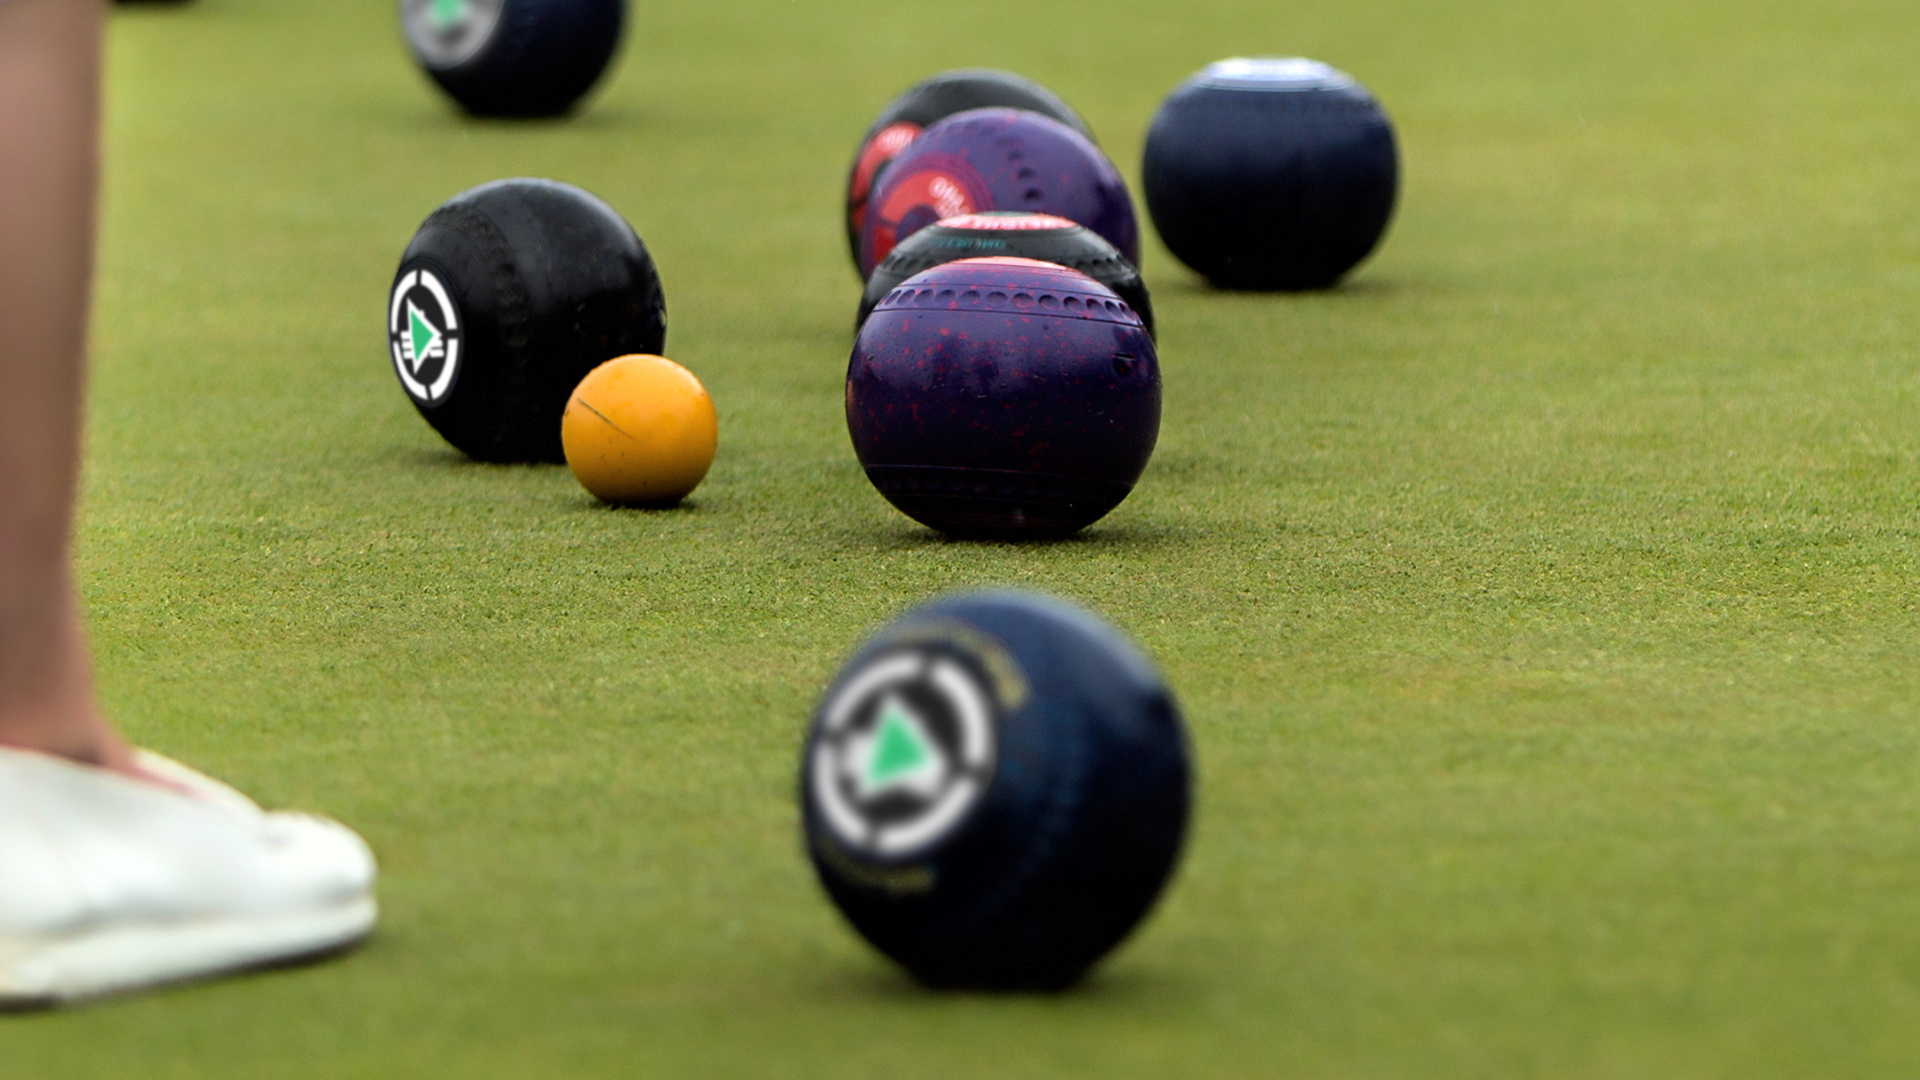 Dune Rats on the green in the lawn bowls scene - Nightlife ...